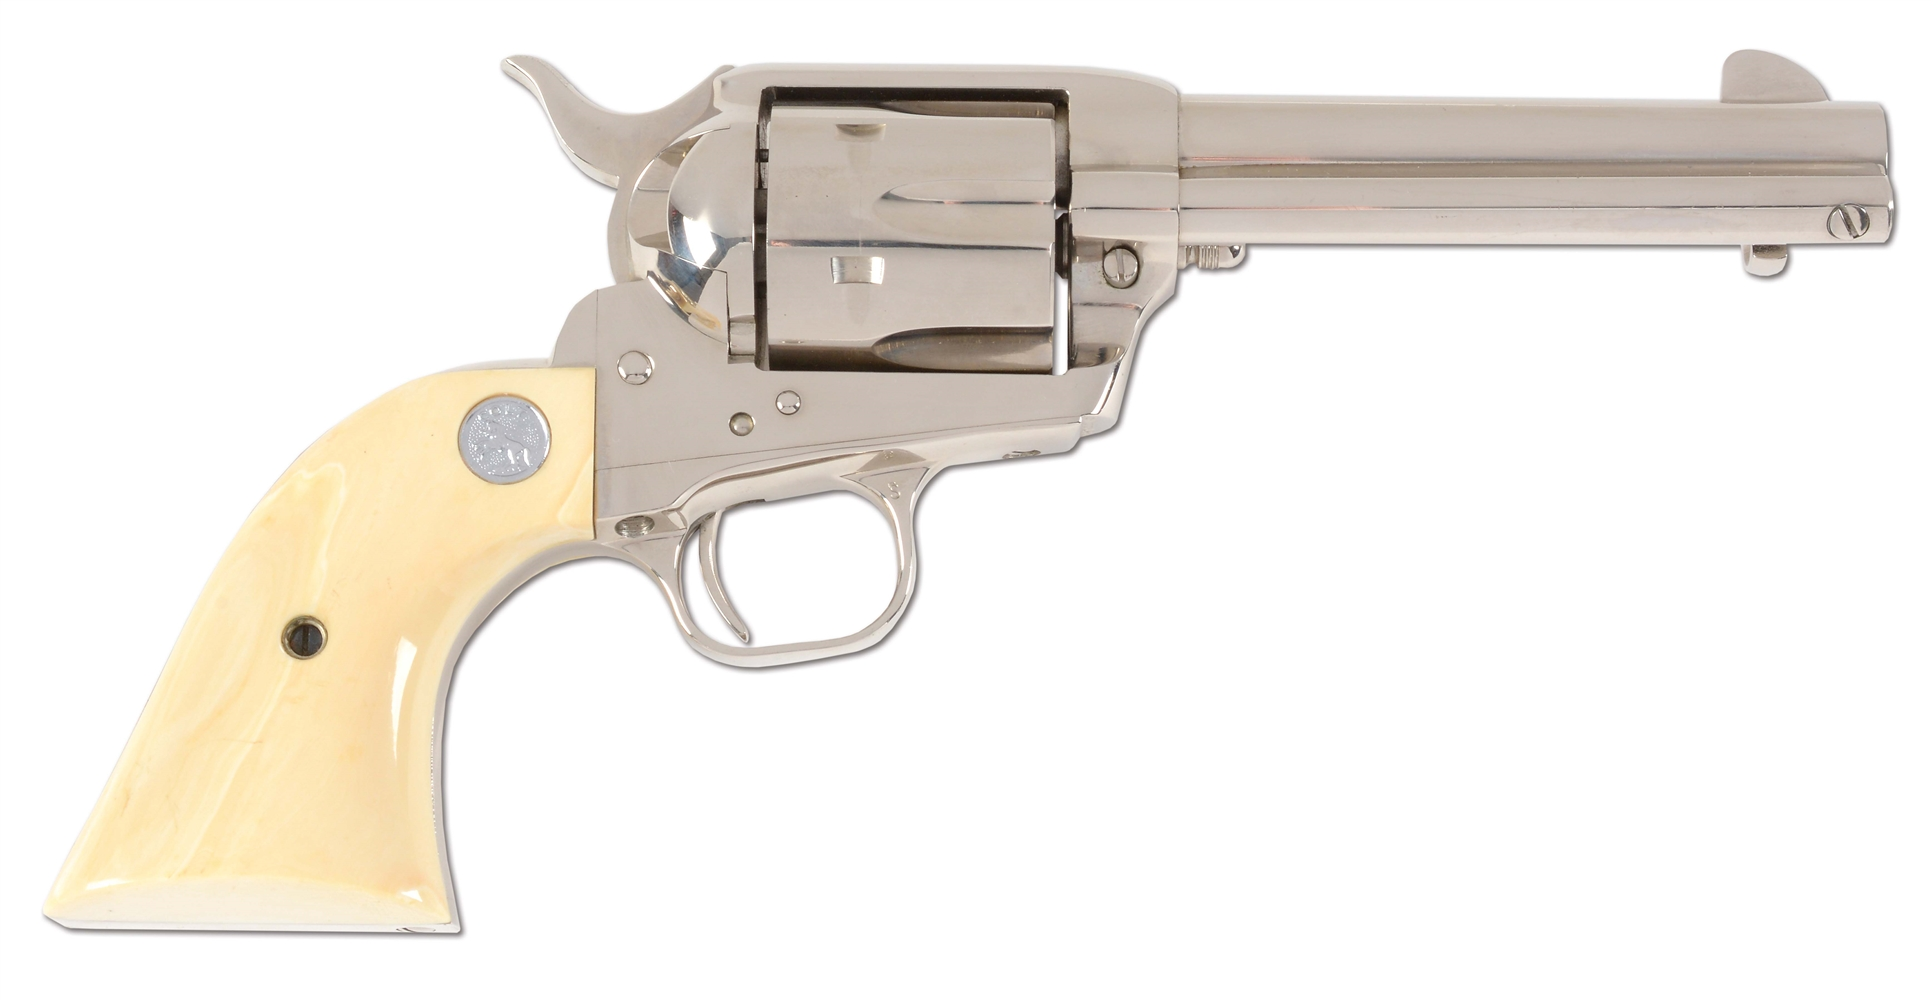 (M) COLT SINGLE ACTION ARMY .45 ACP REVOLVER WITH CASE